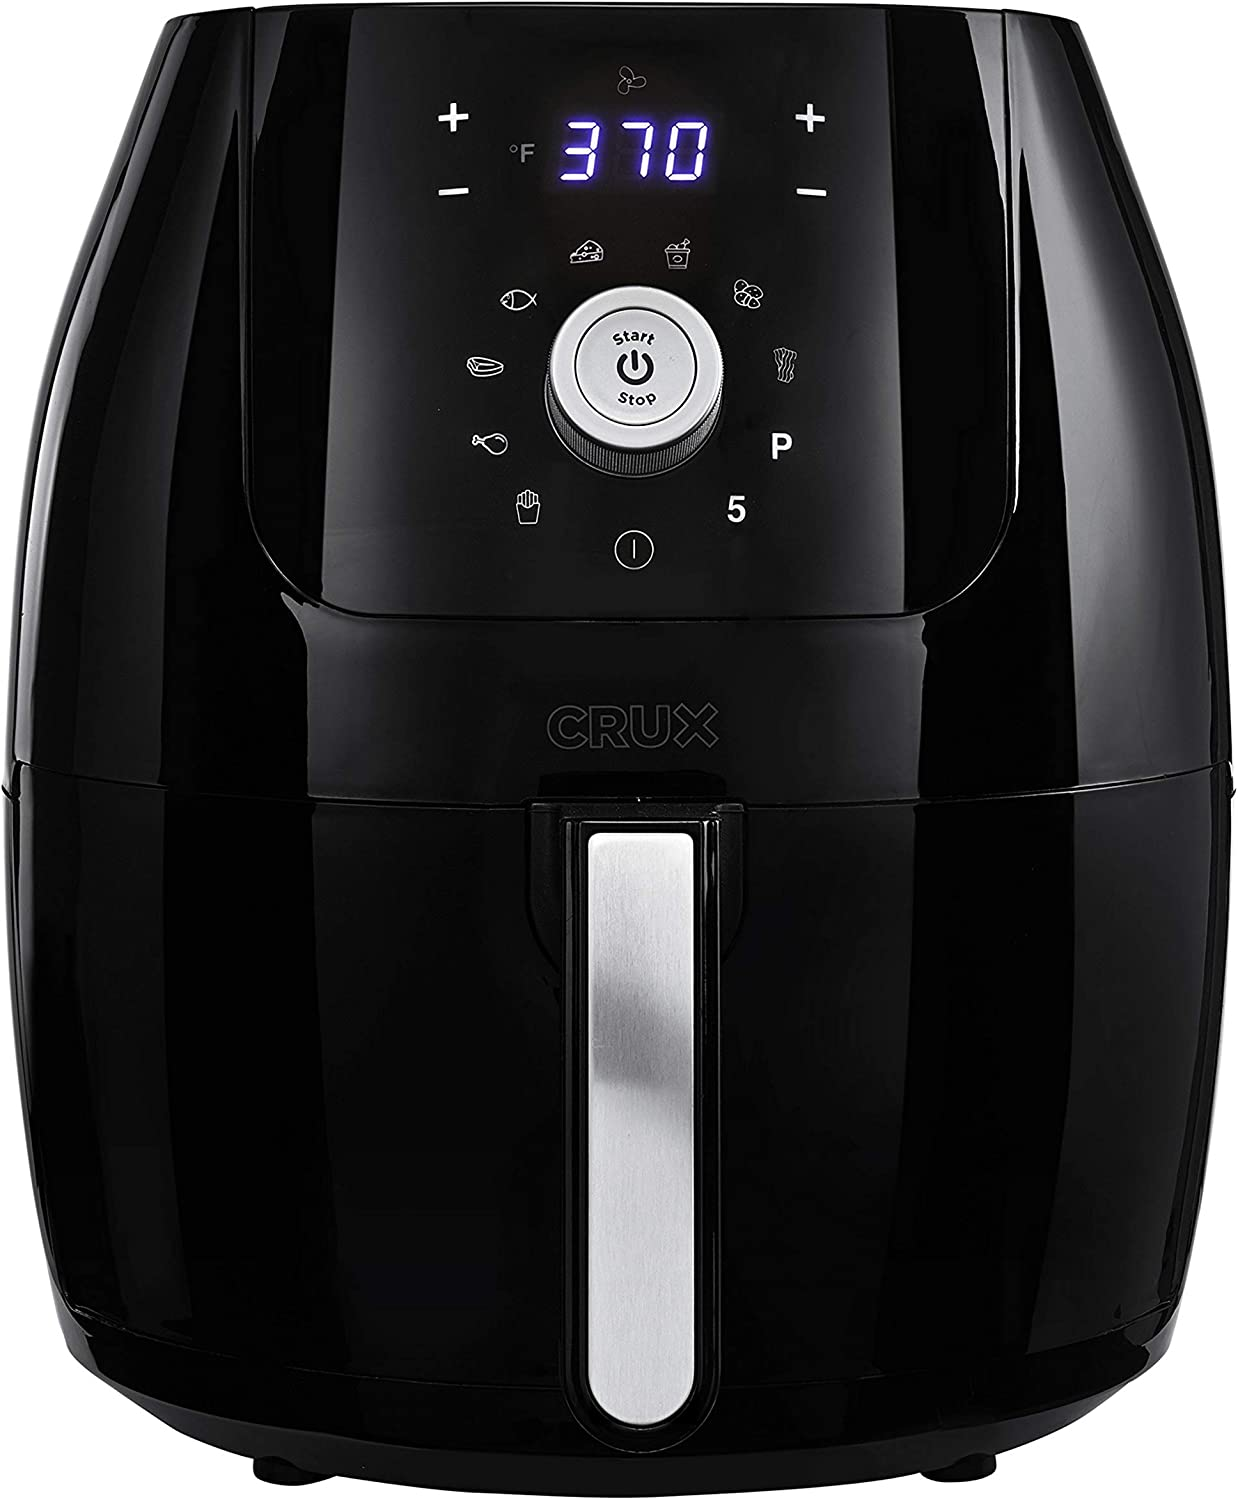 CRUX 6QT Digital Air Fryer, Healthy No-Oil Air Frying & Cooking, Hassle-Free Temperature and Timer Control, Easy to Clean with Removeable Dishwasher Safe Pan and Crisping Tray, Black